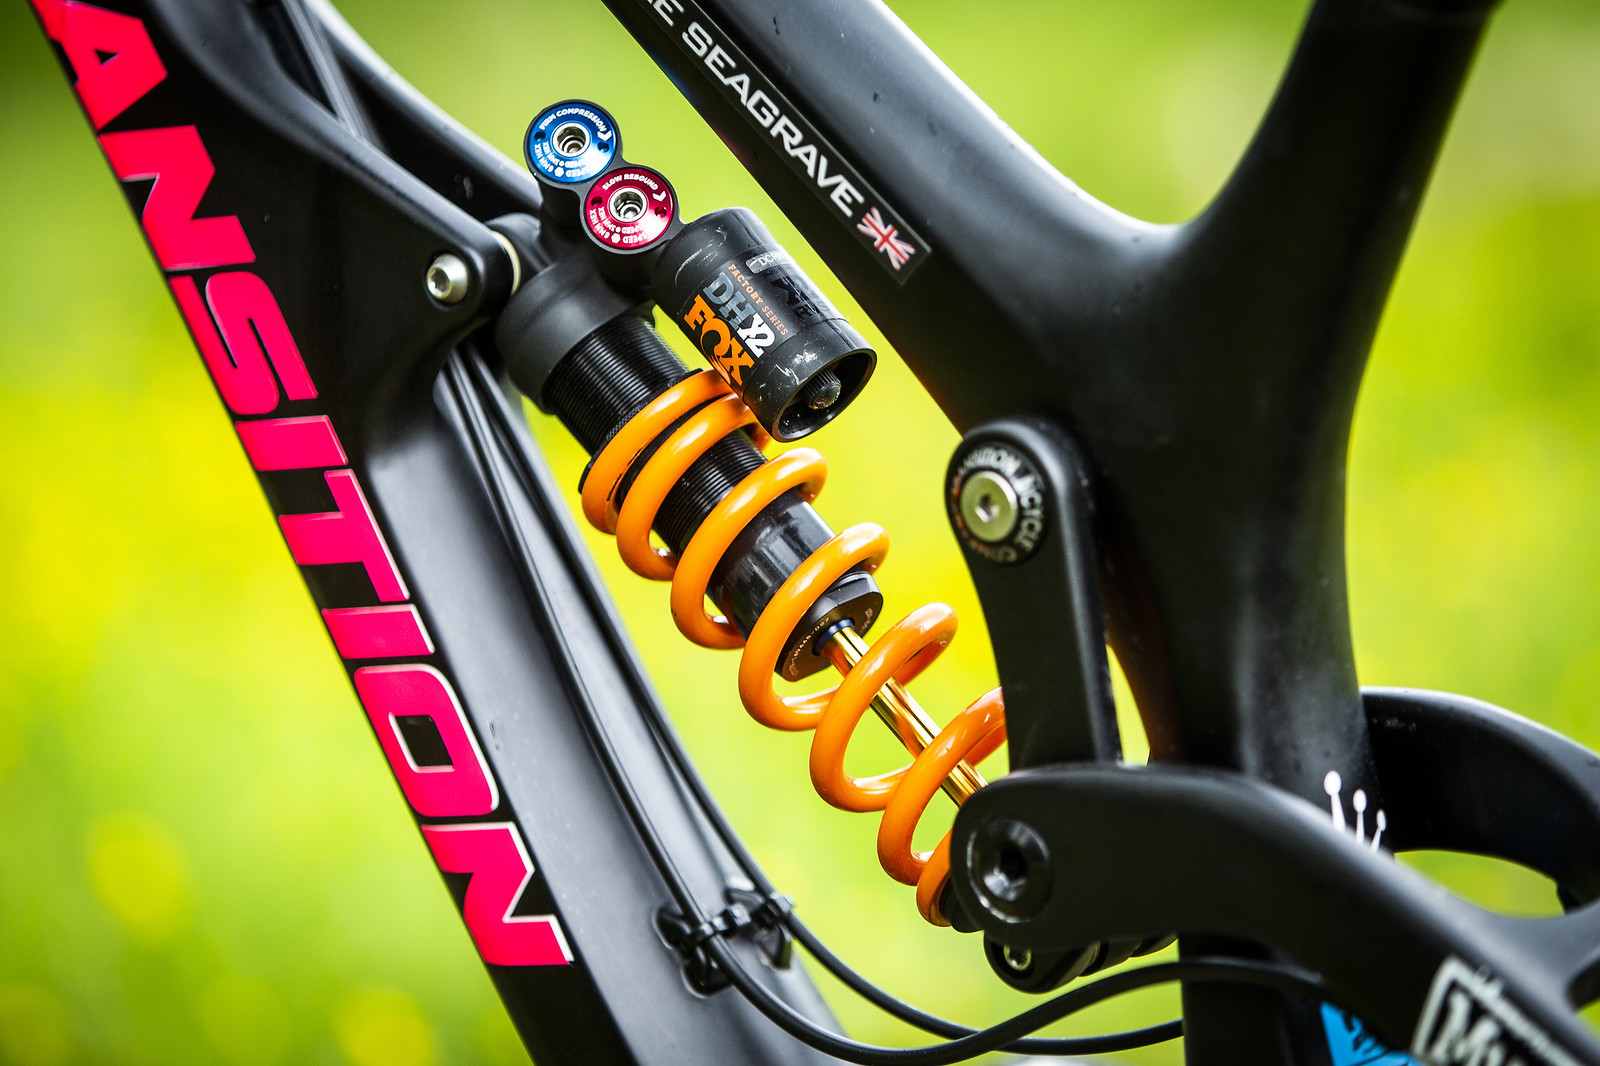 FOX DHX2 Coil Shock - WINNING BIKE - Tahnee Seagrave's Transition TR11 - Mountain Biking Pictures - Vital MTB